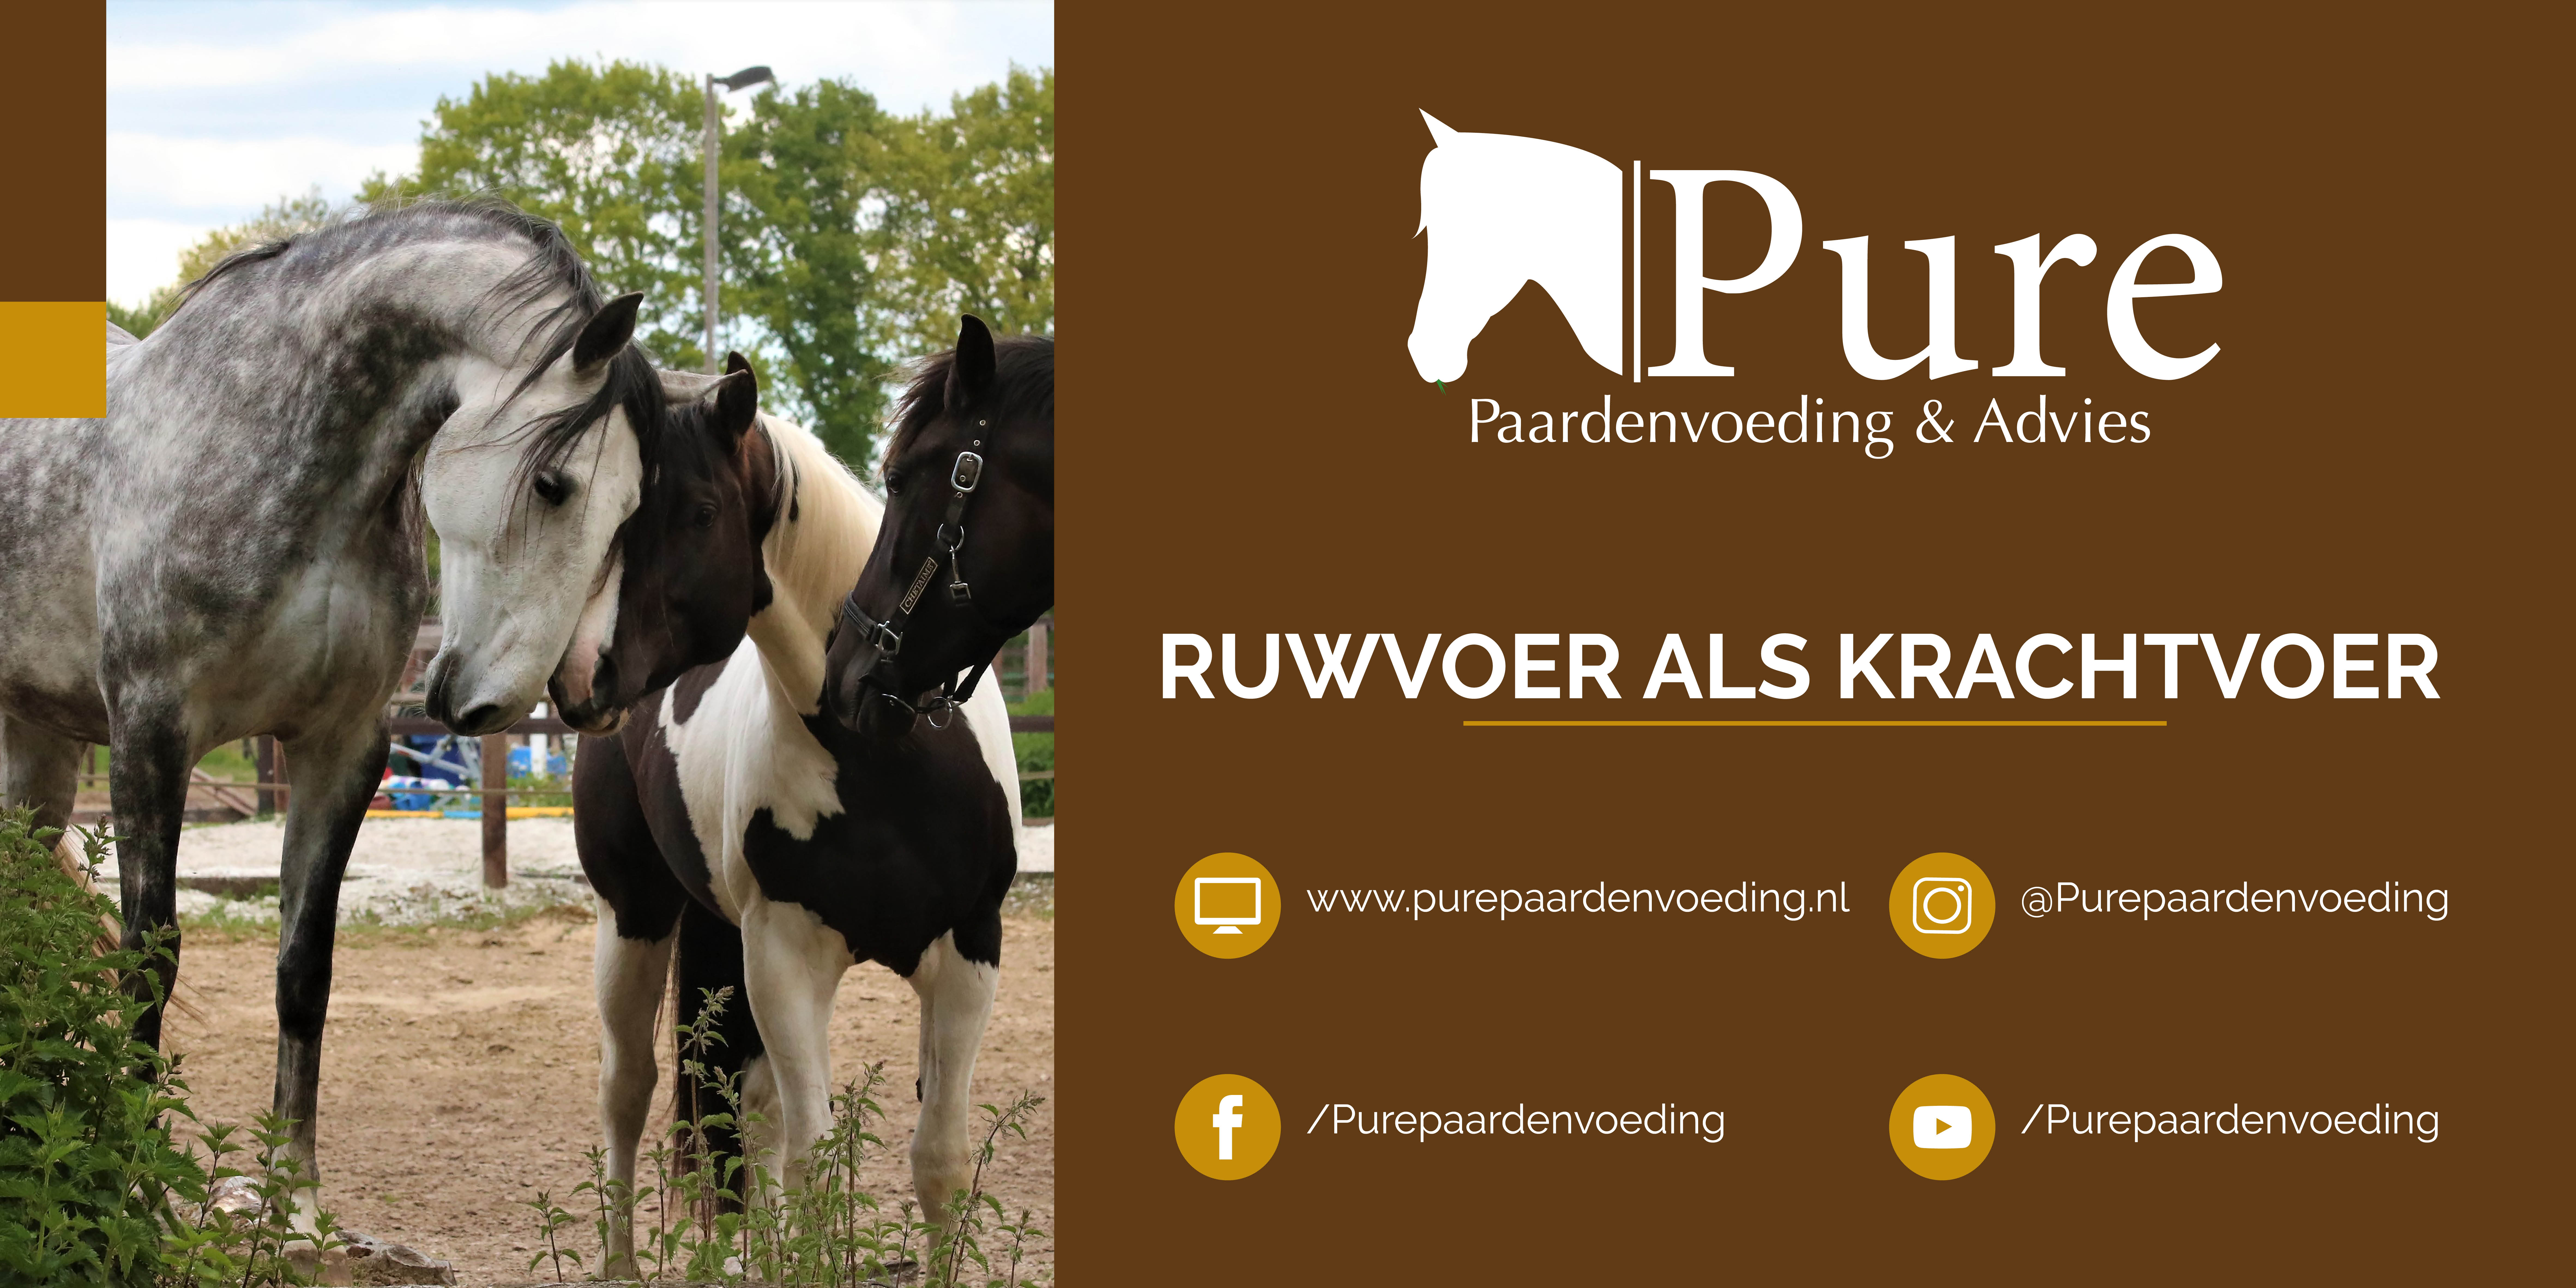 Pure Paardenvoeding